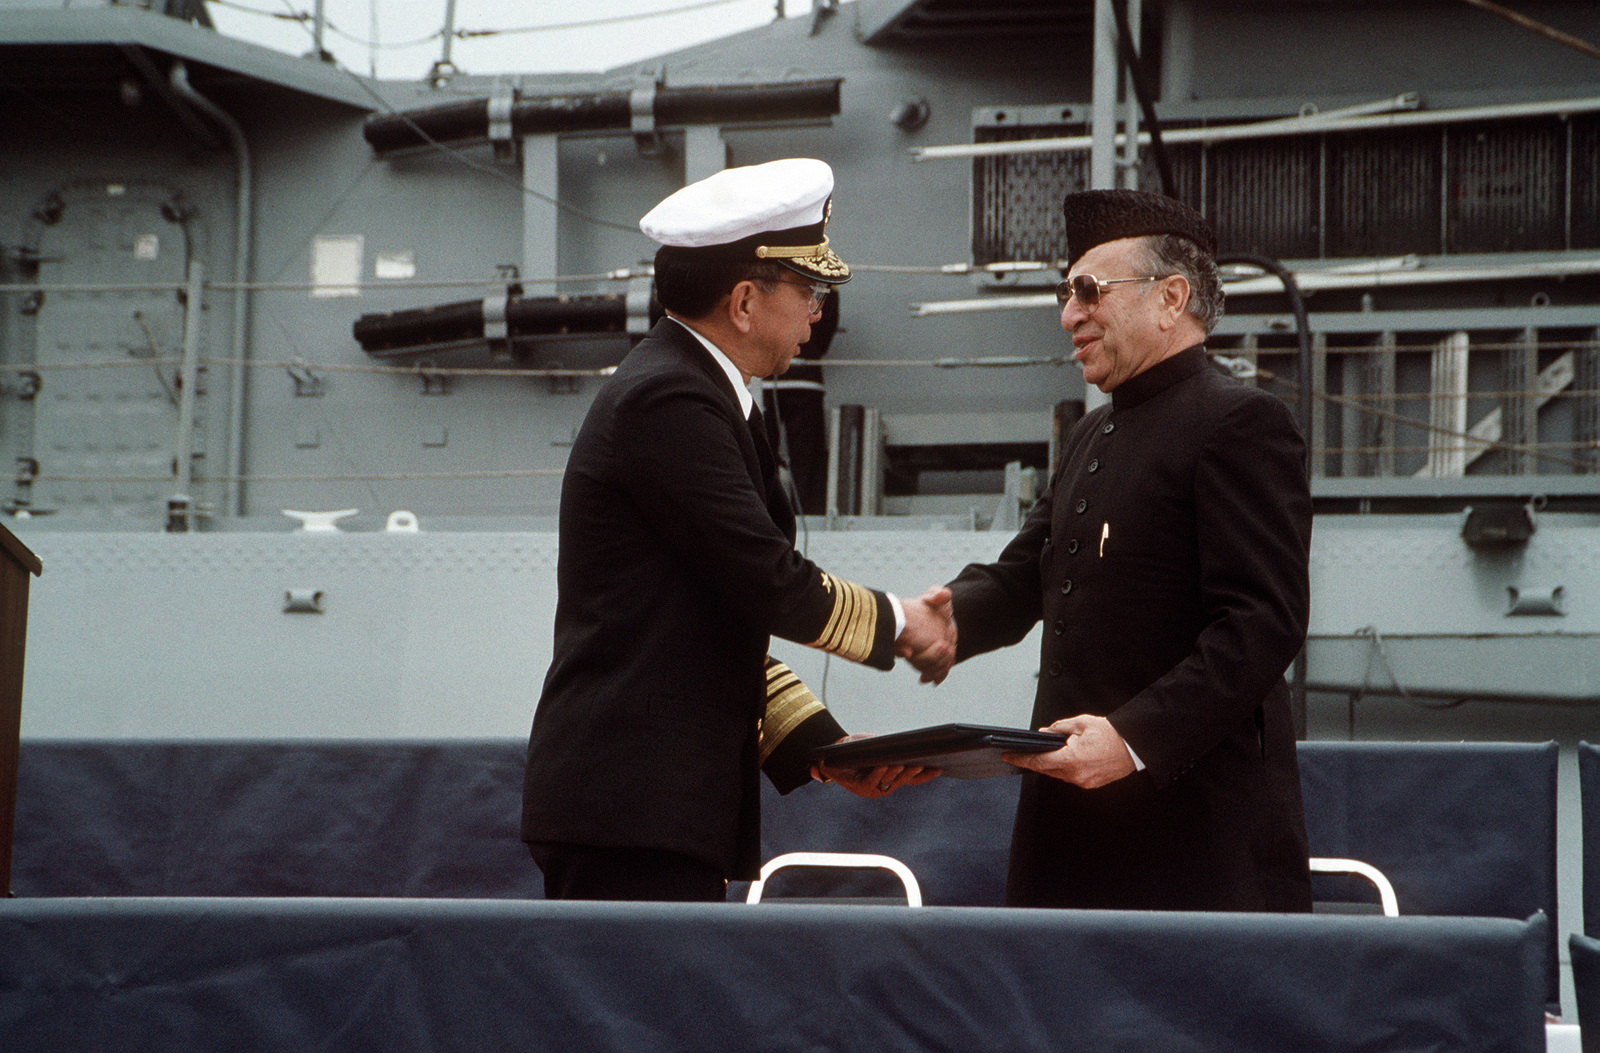 Vice Admiral (VADM) Robert K.U. Kihune, Commander, Naval Surface Force, US Pacific Fleet, presents transfer documents to Jamsheed K.A. Marker, Ambassador of Pakistan, at the conclusion of the commissioning ceremony by which the former Guided Missile Frigate USS BROOKE (FFG 1) and the former frigate USS O'CALLAHAN (FF 1051) were transferred to the Pakistani navy.  The BROOKE was commissioned PNS KHAIBAR (D 163) while the O'CALLAHAN became PNS ASLAT (F 265)